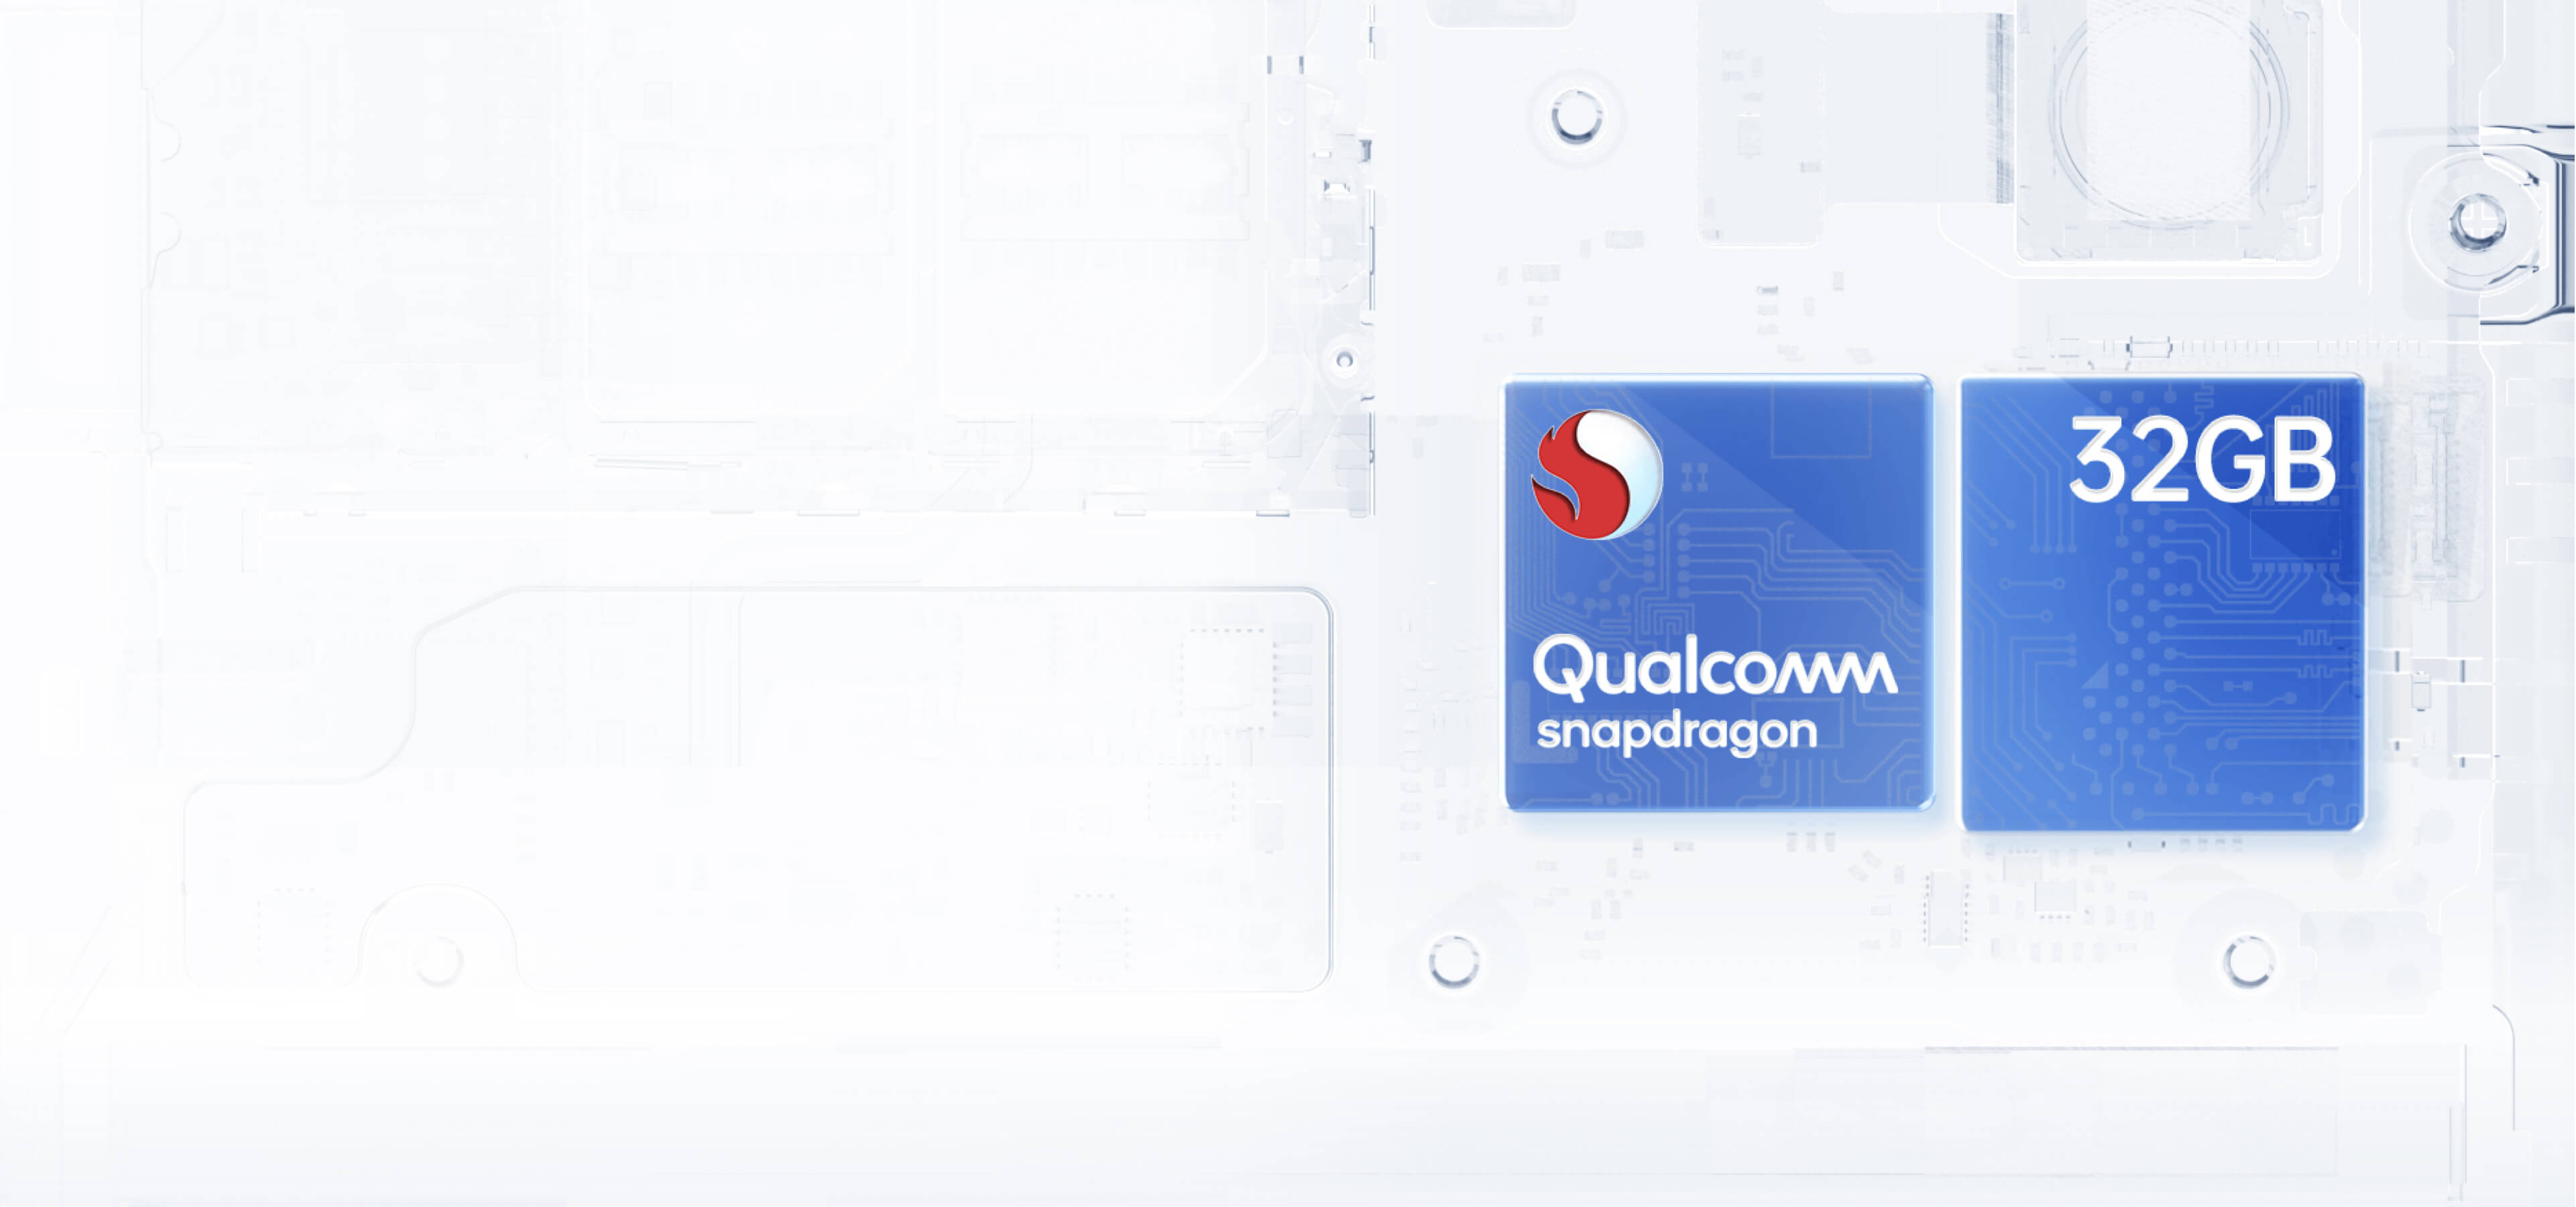 OPPO A33 Qualcomm Snapdragon